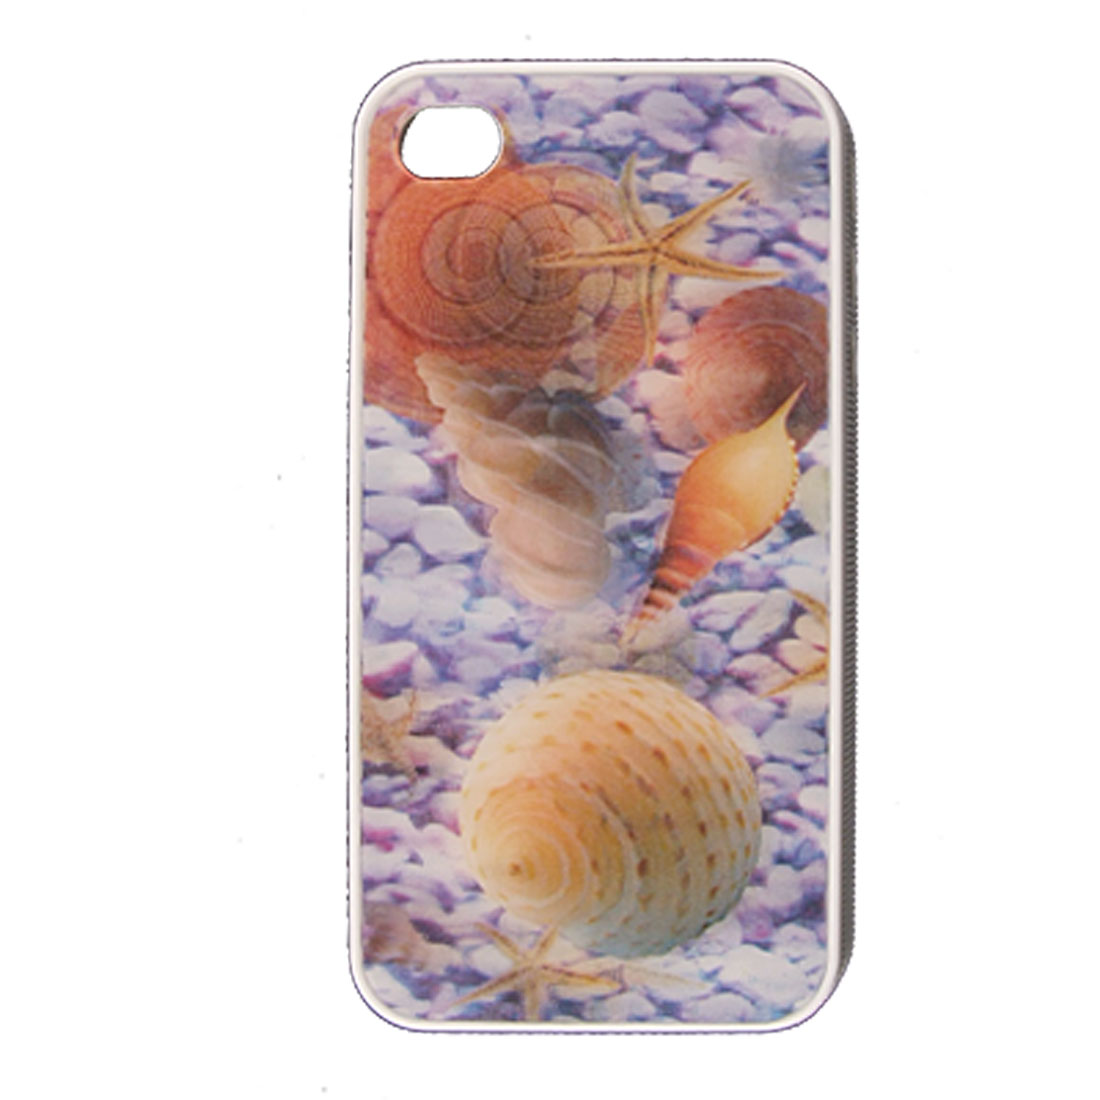 3D Shell Pattern Plastic Back Case Cover for iPhone 4 4G